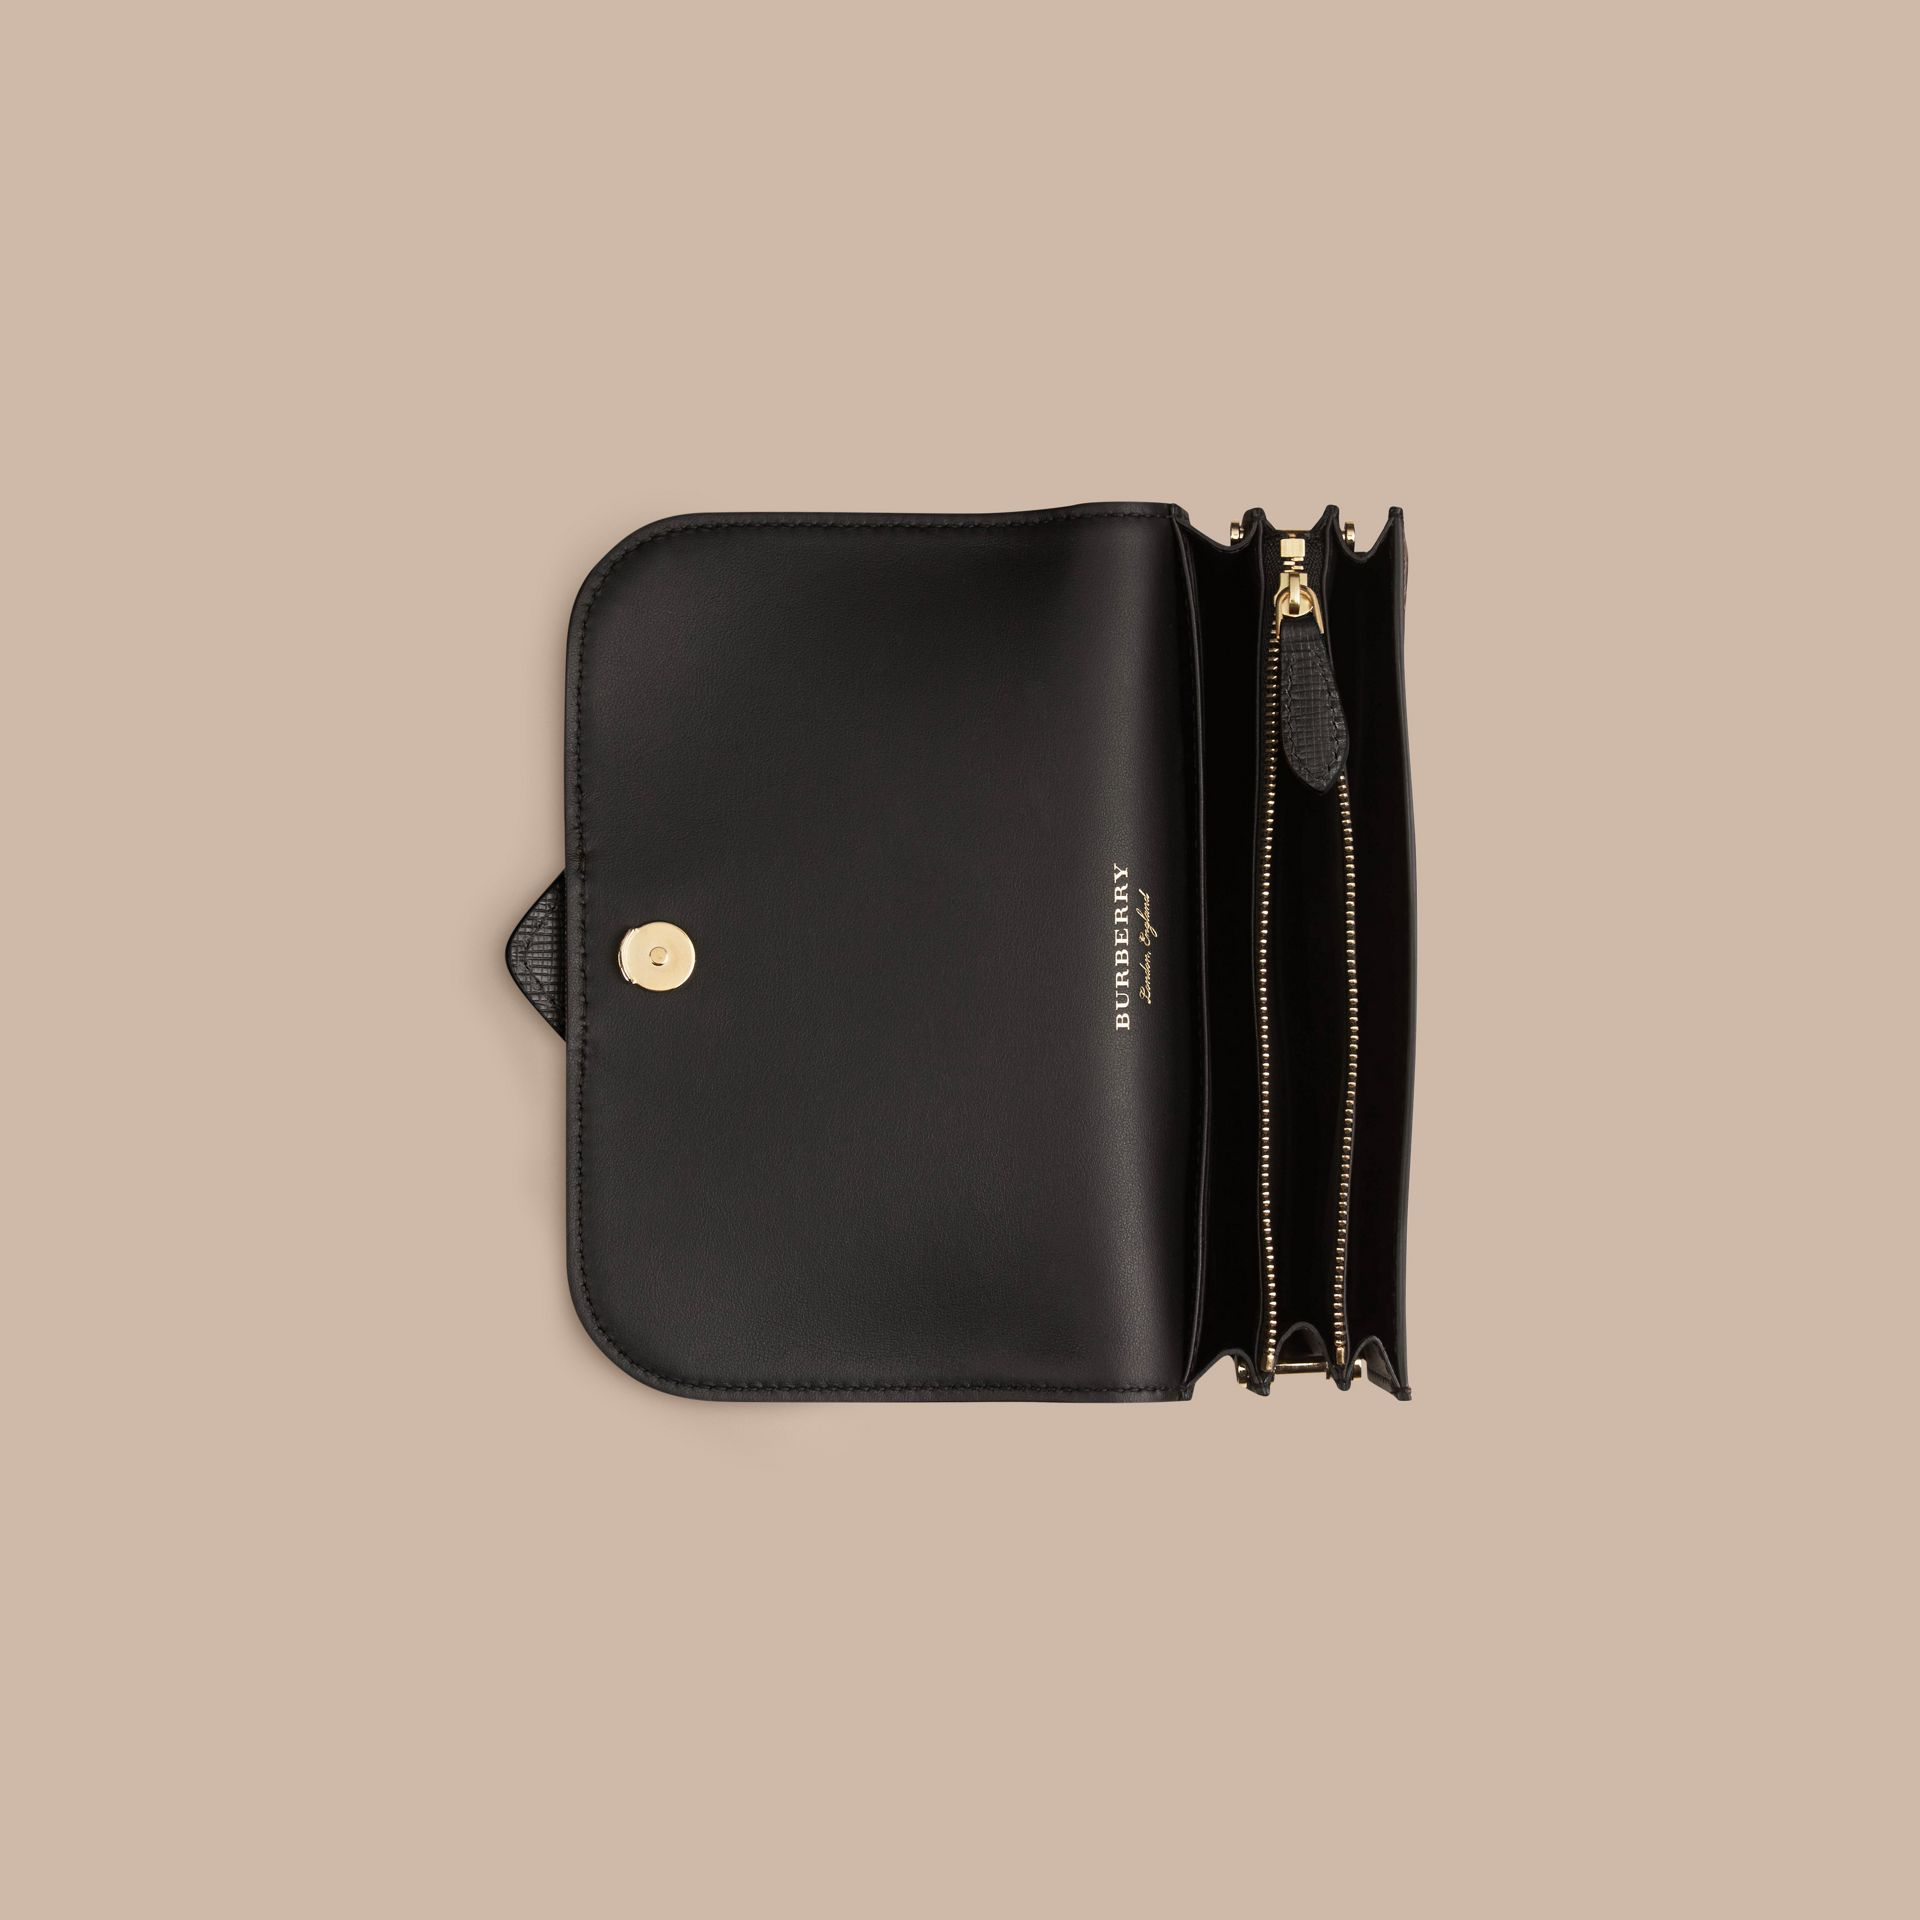 Noir Petit sac The Buckle en coton House check et cuir Noir - photo de la galerie 7